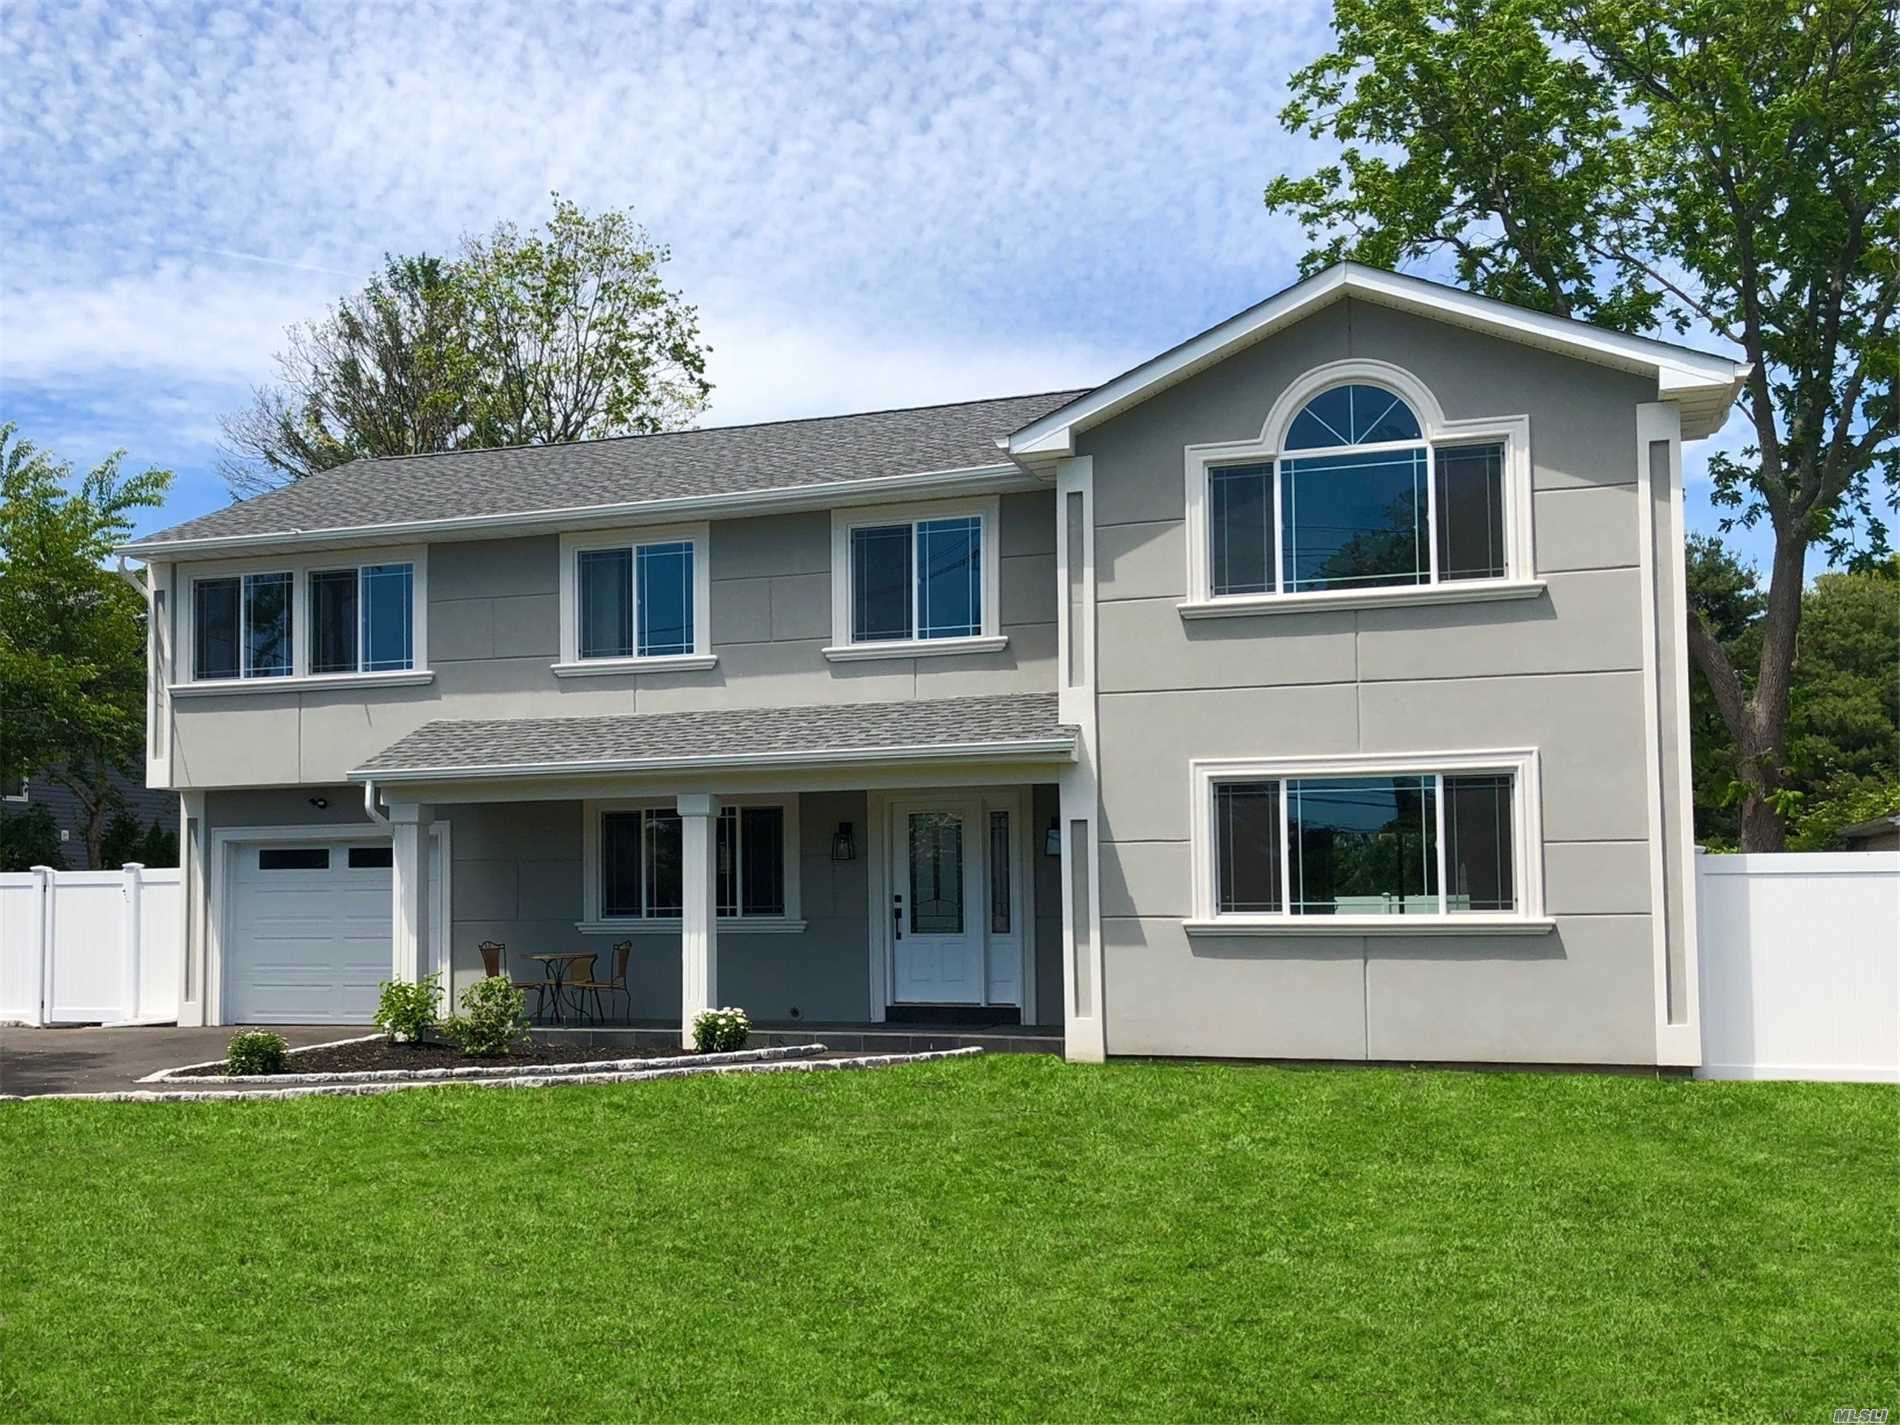 Photo of home for sale at 23 Haide Pl, East Islip NY